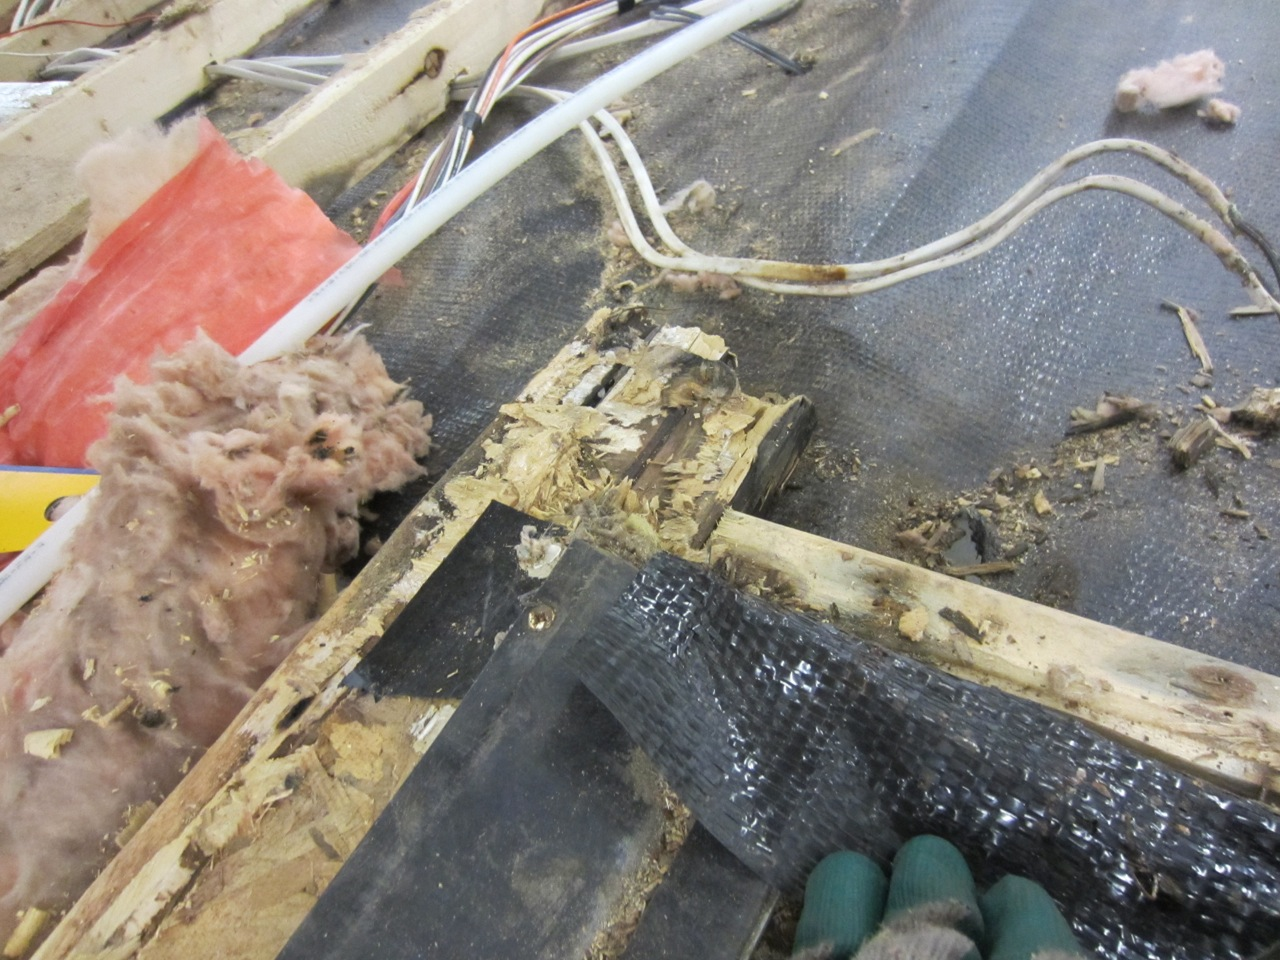 The floor joists are a mess from pieces of sub-floor boards that didn't fully come off.